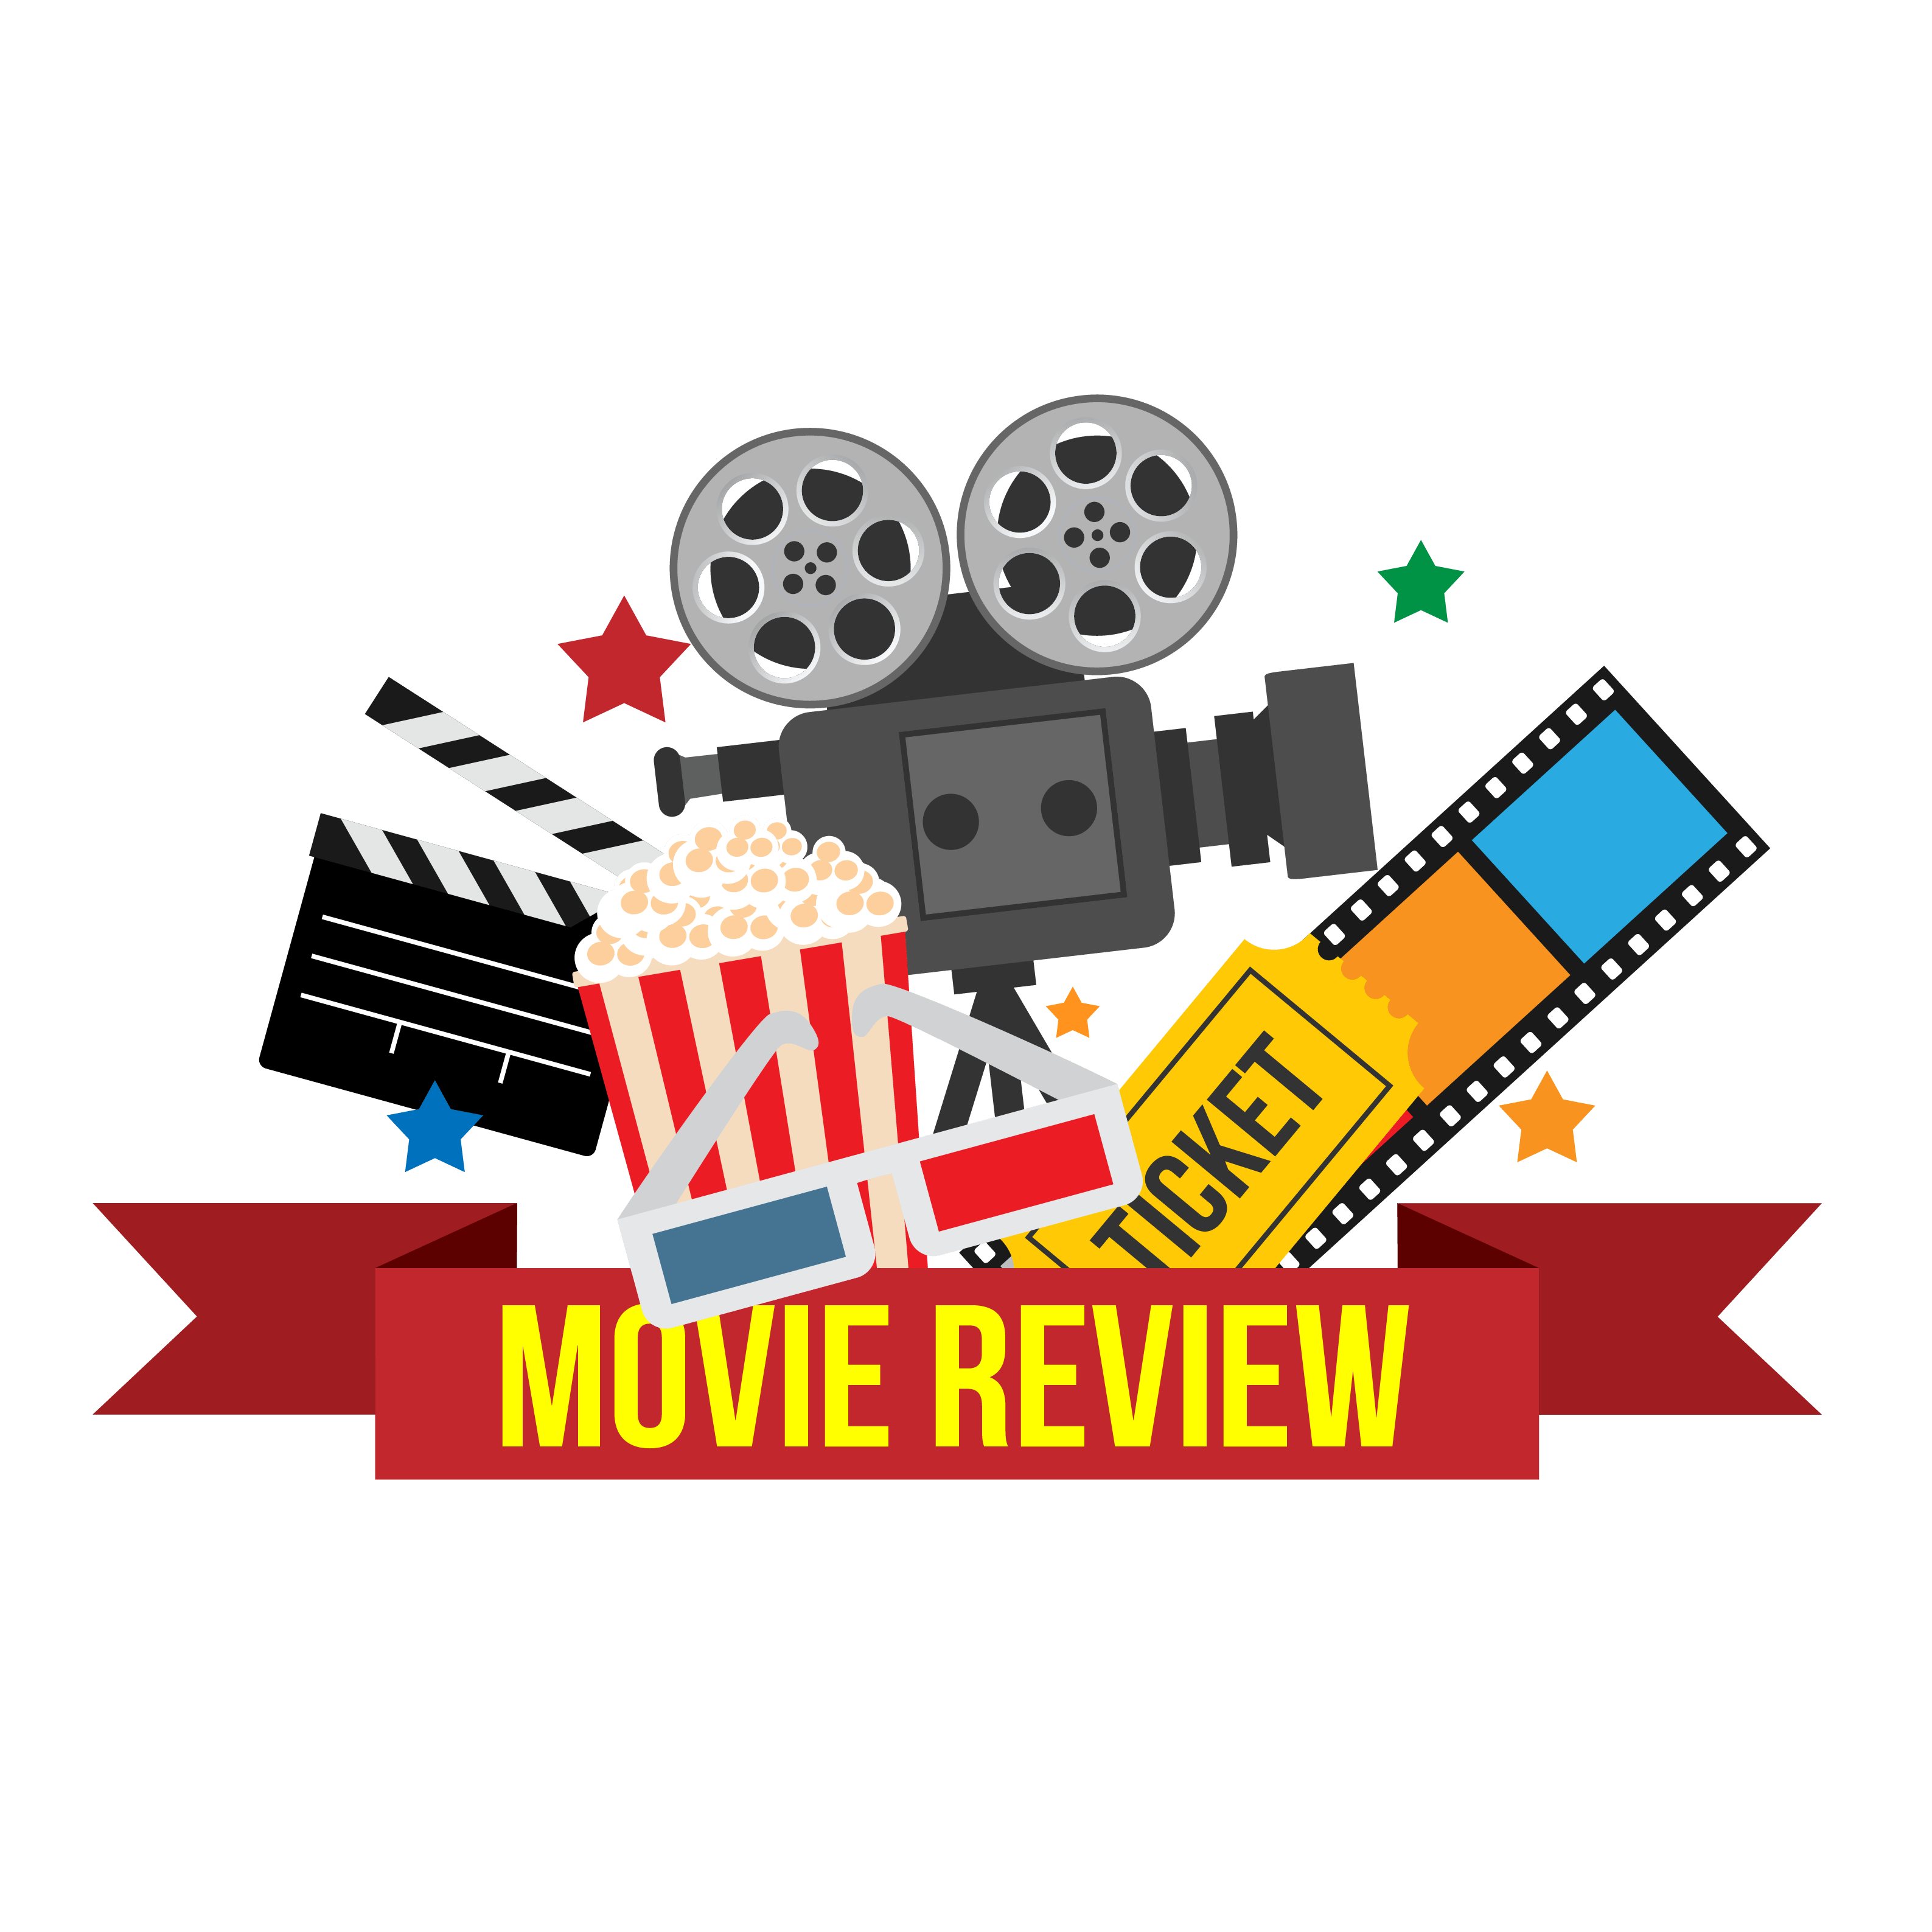 Movie review png. The fate of furious